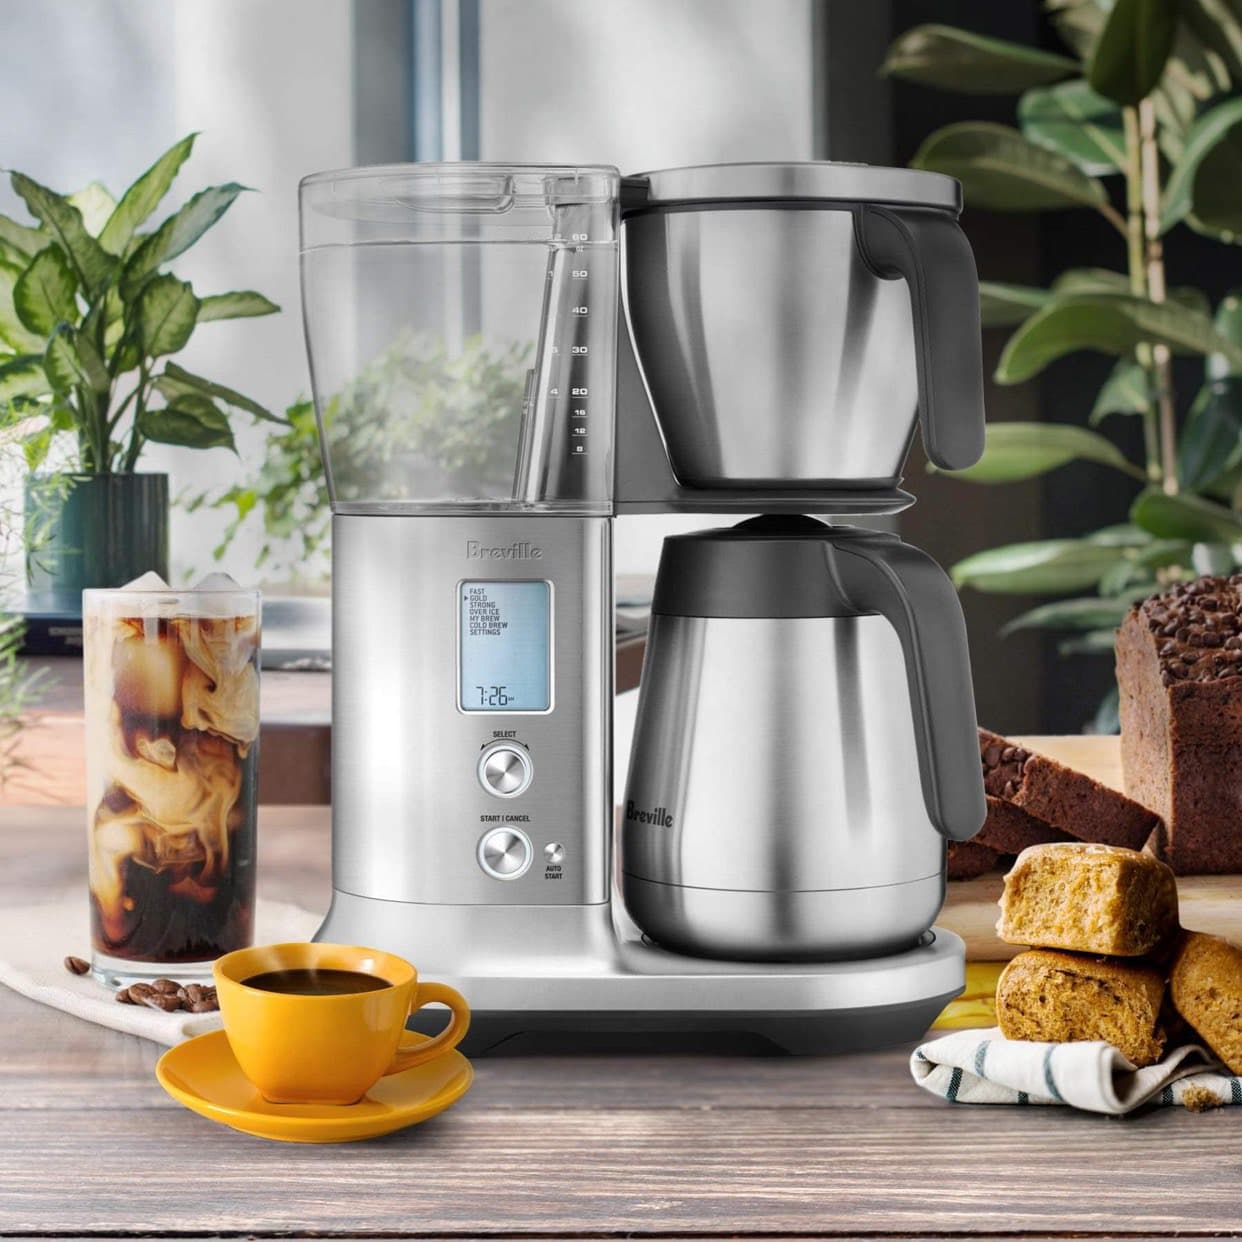 Breville Coffee Machine | Top Things to do with used Coffee Grounds brought to you by Ourlifestylediary.com